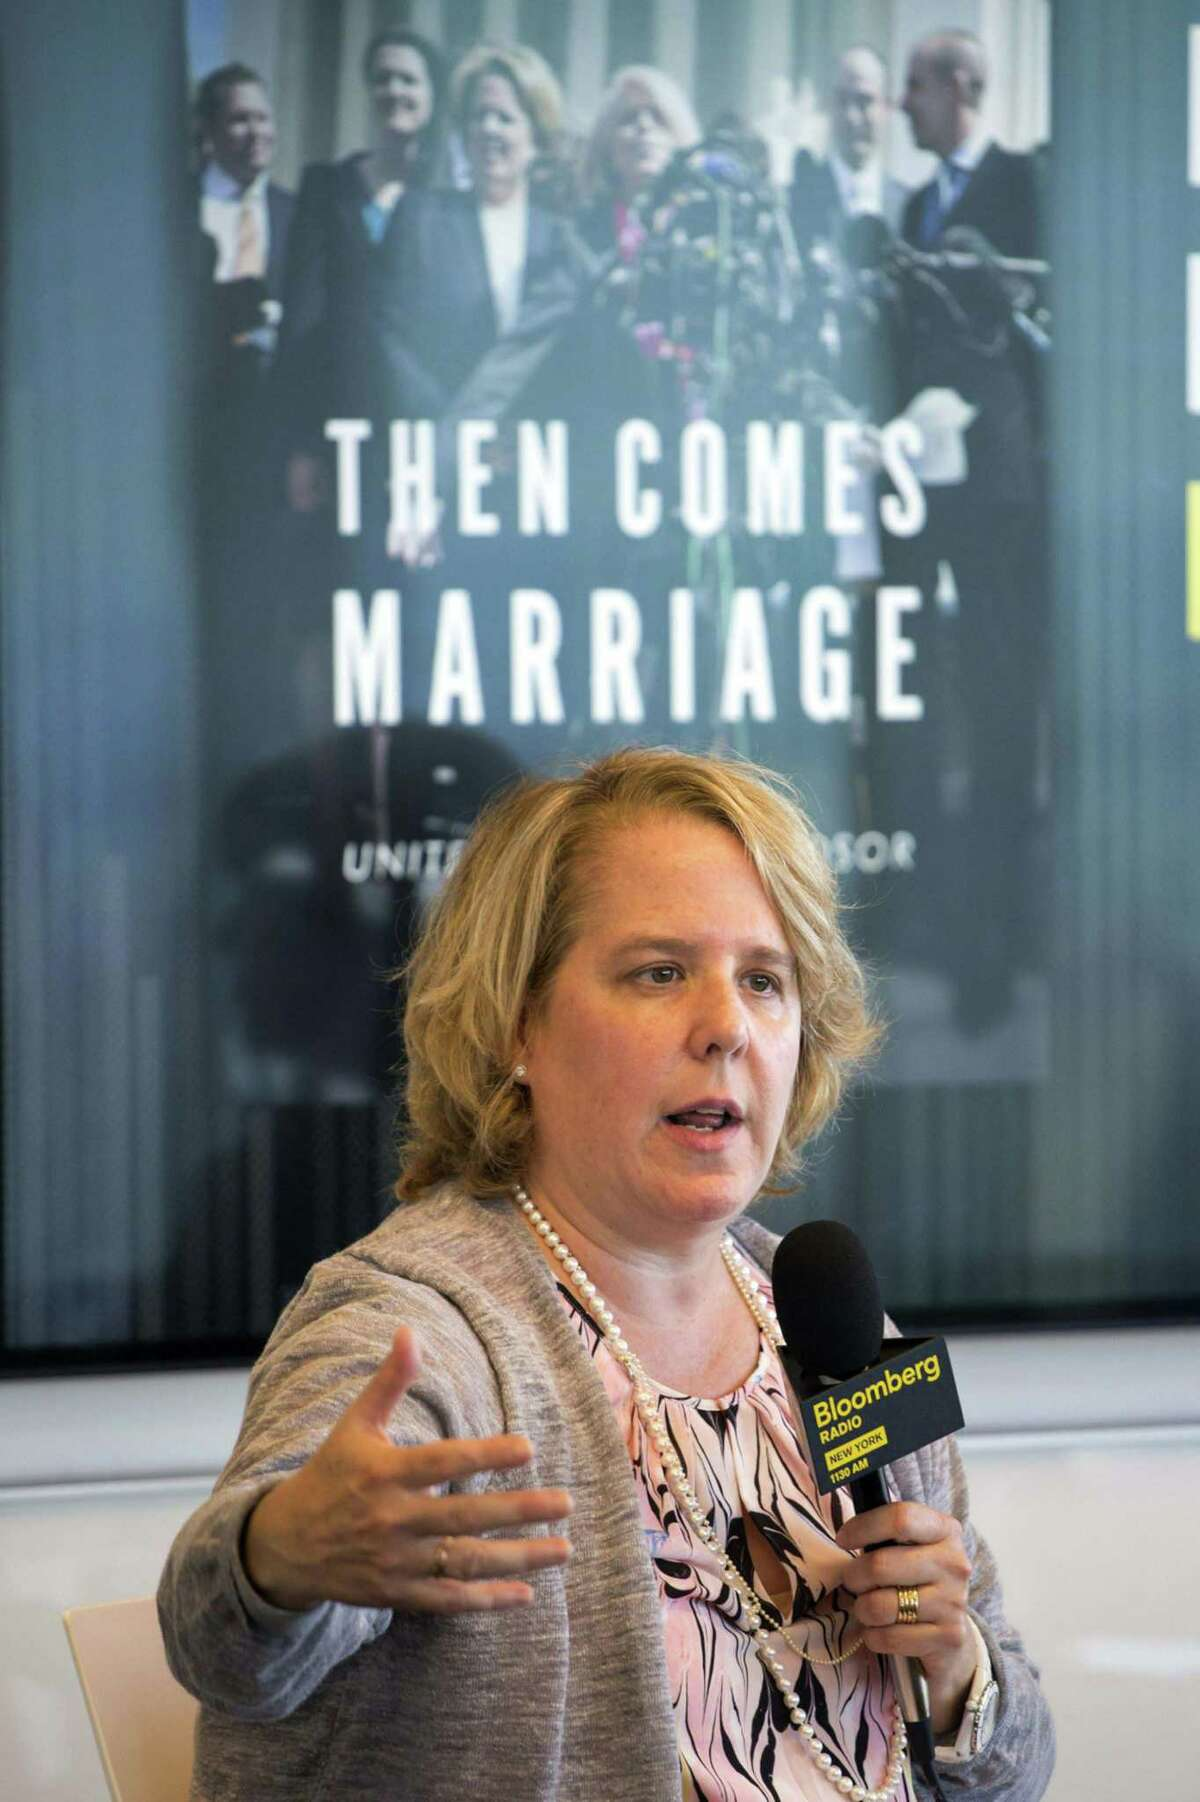 Attorney Roberta Kaplan speaks during a Bloomberg Radio interview in New York on Sept. 16, 2015.